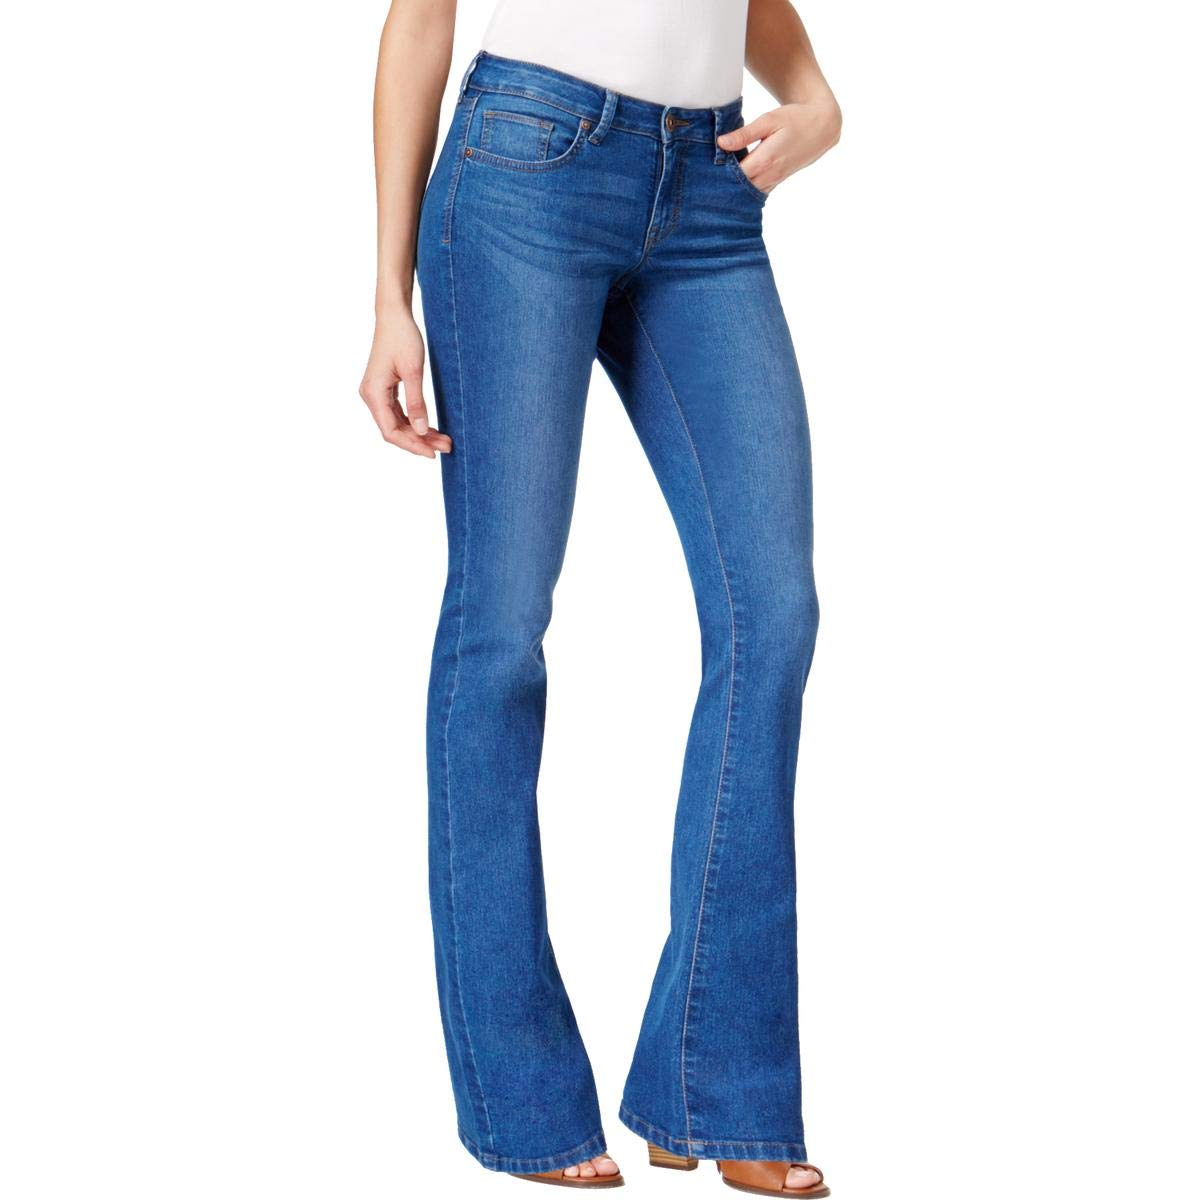 8 Short Style /& Co Curvy-Fit Bootcut Jeans in Capside Wash